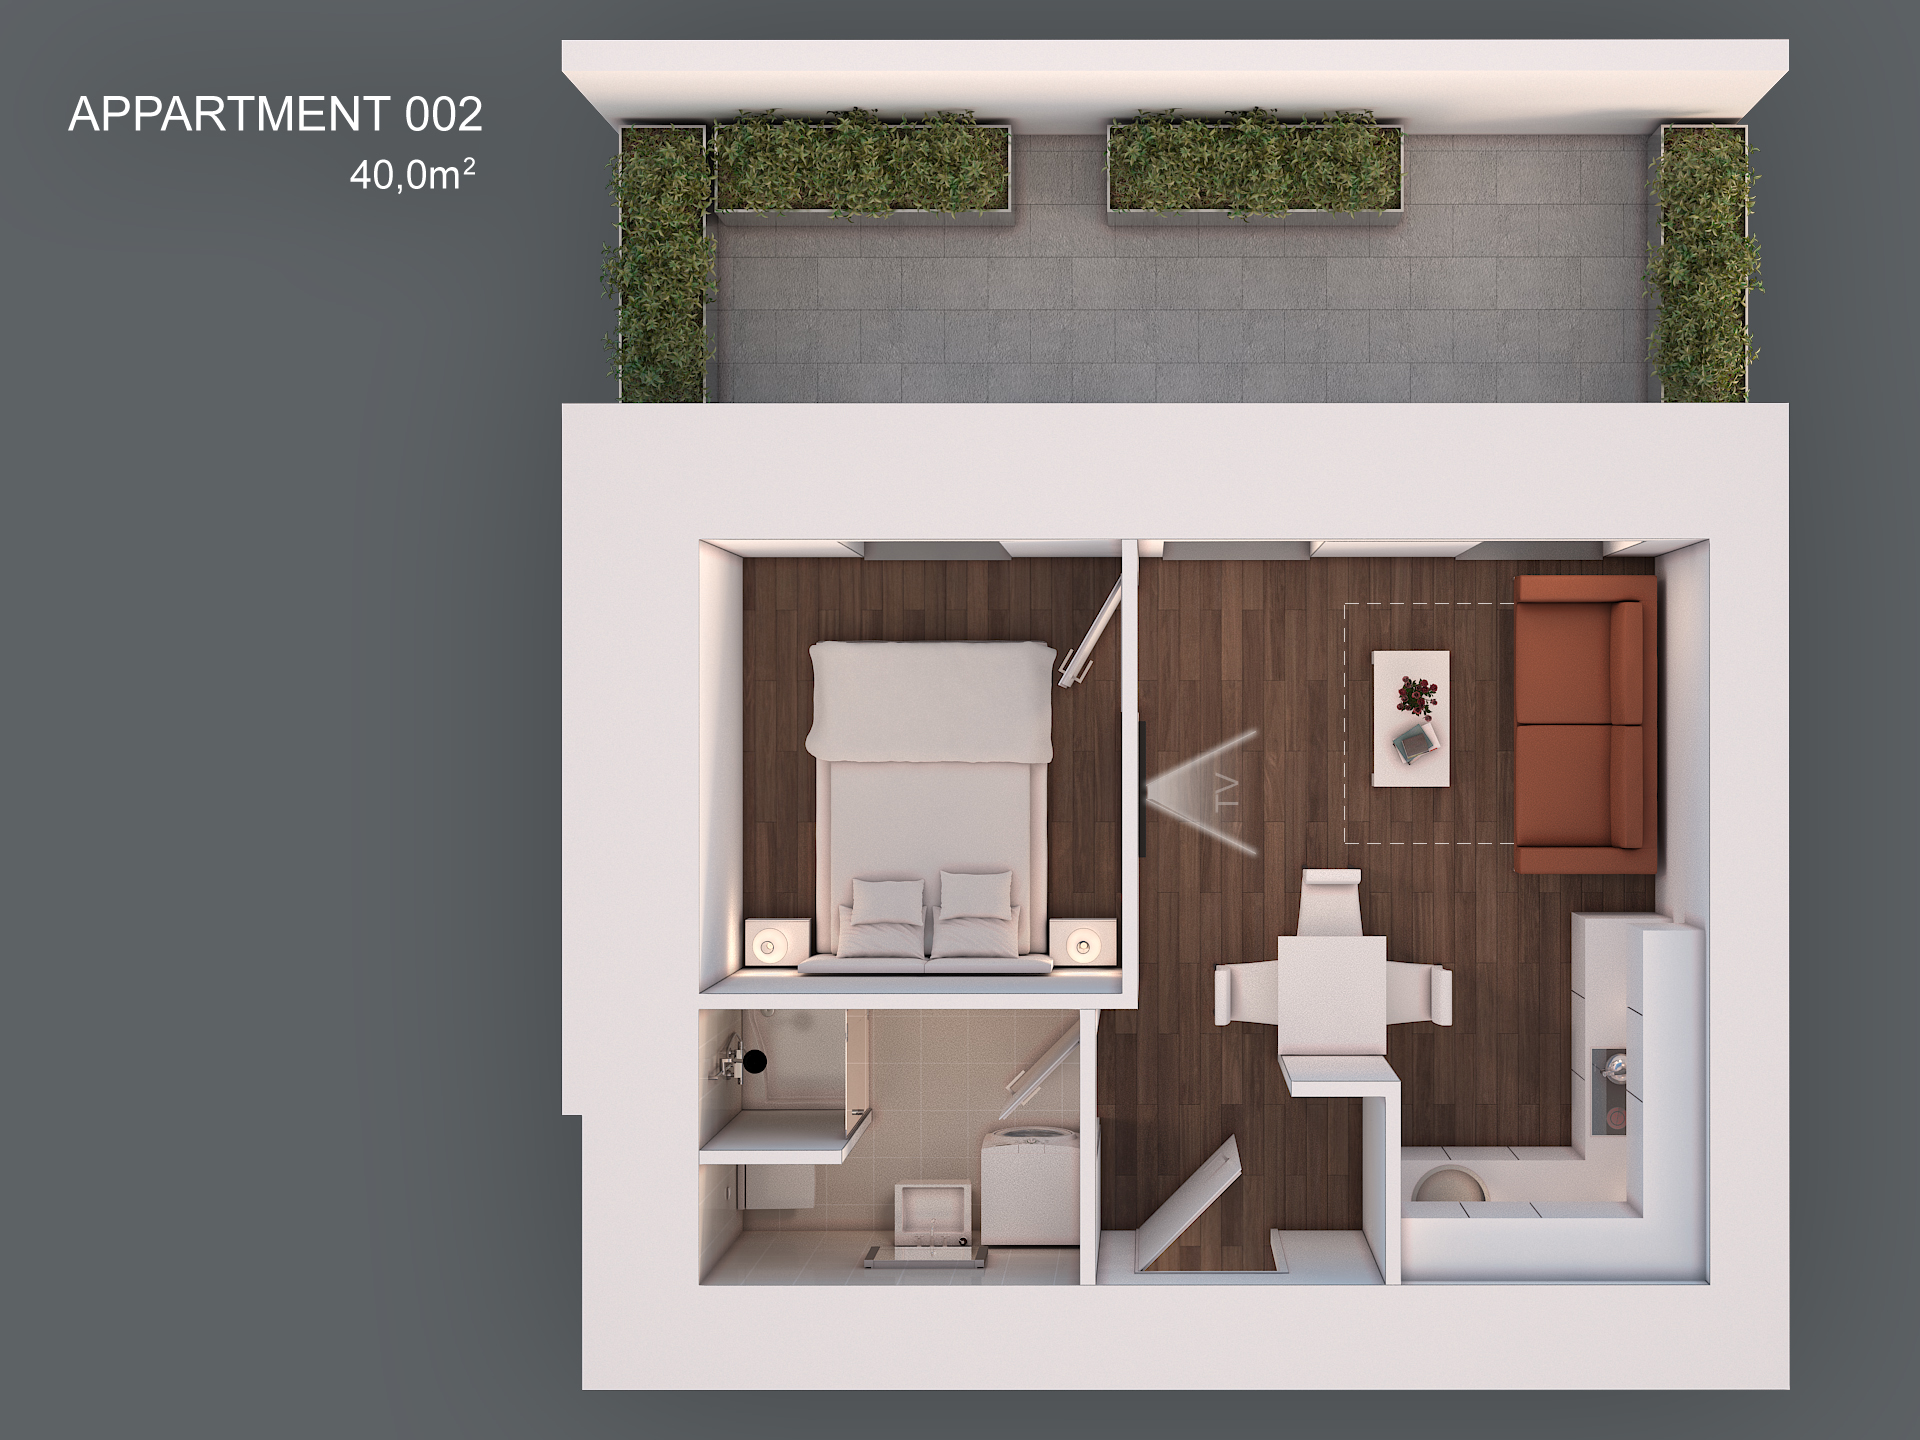 Apartment 002 layout